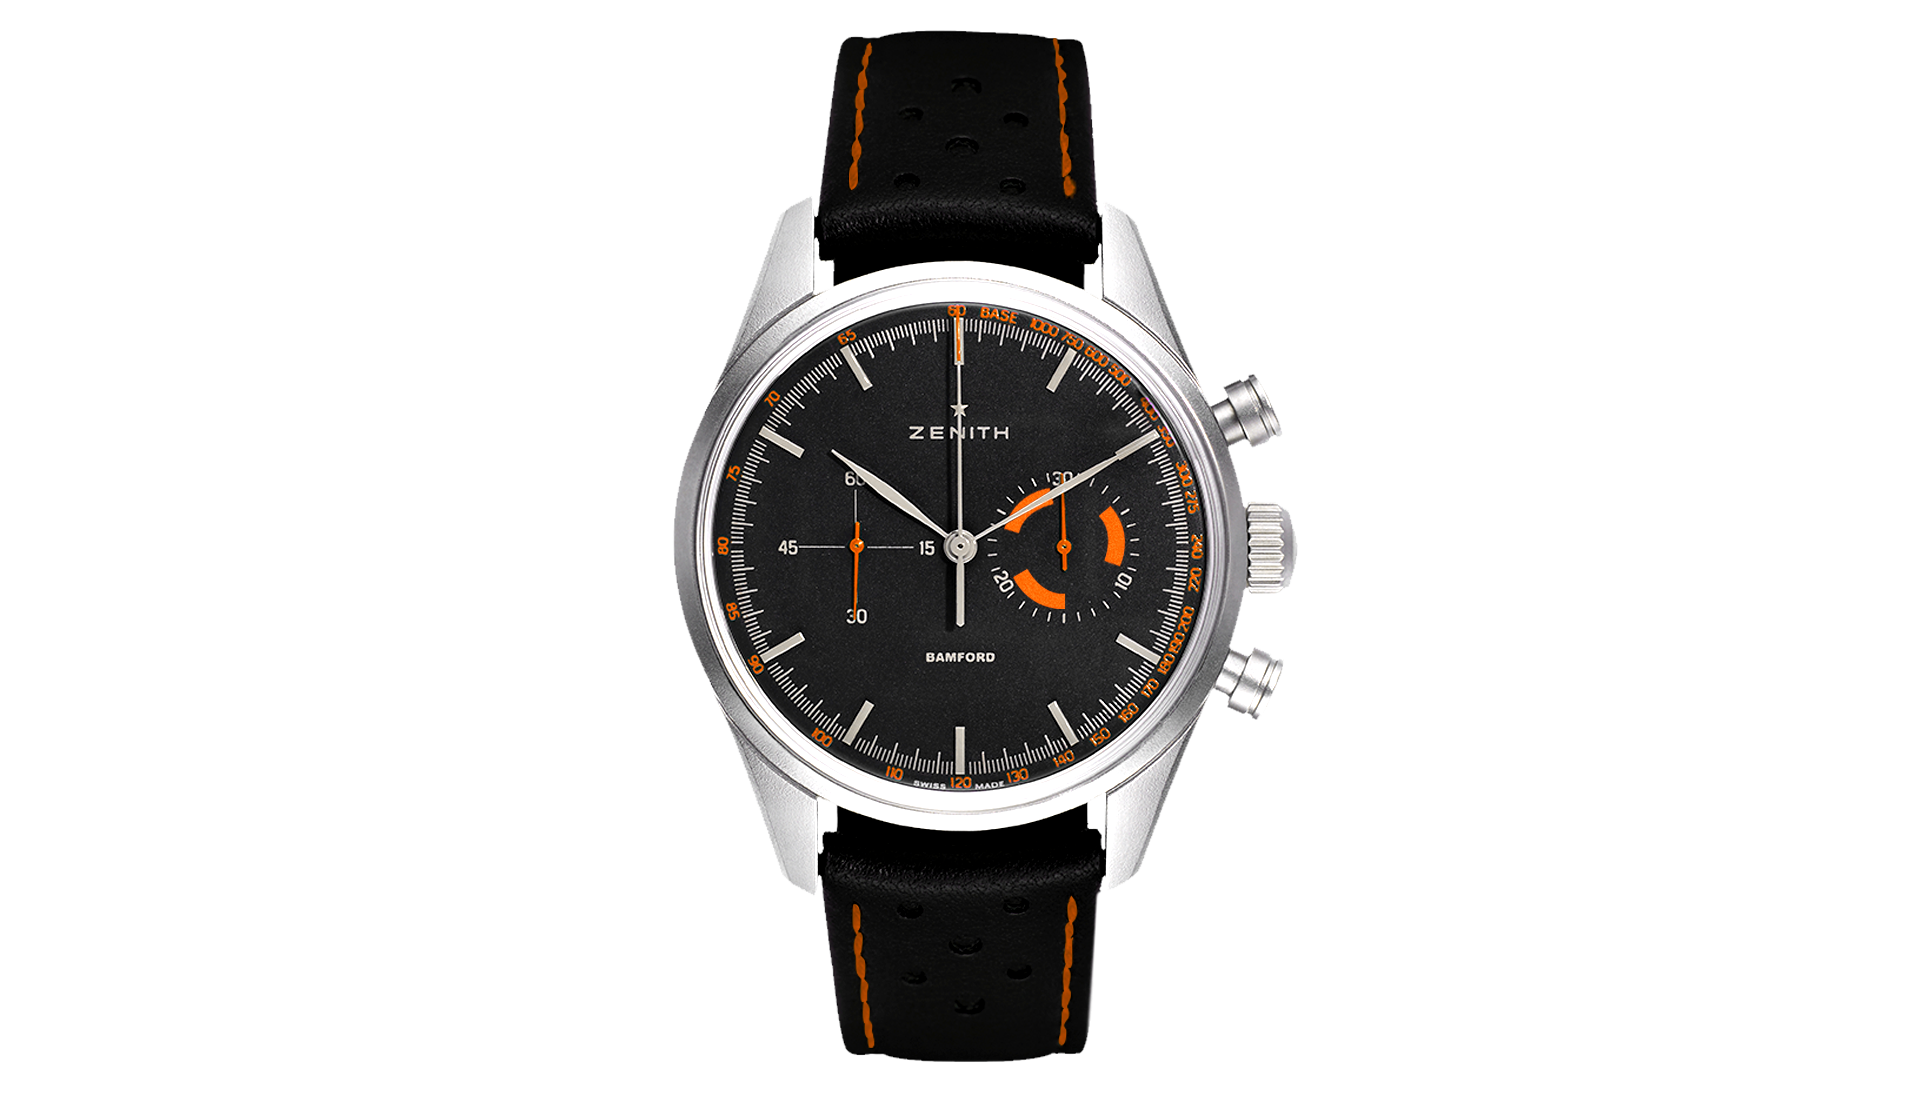 1ef5c9847b79b Bamford Watch Department was born of a desire to re-discover the lost art of  personalisation in an age of mass production